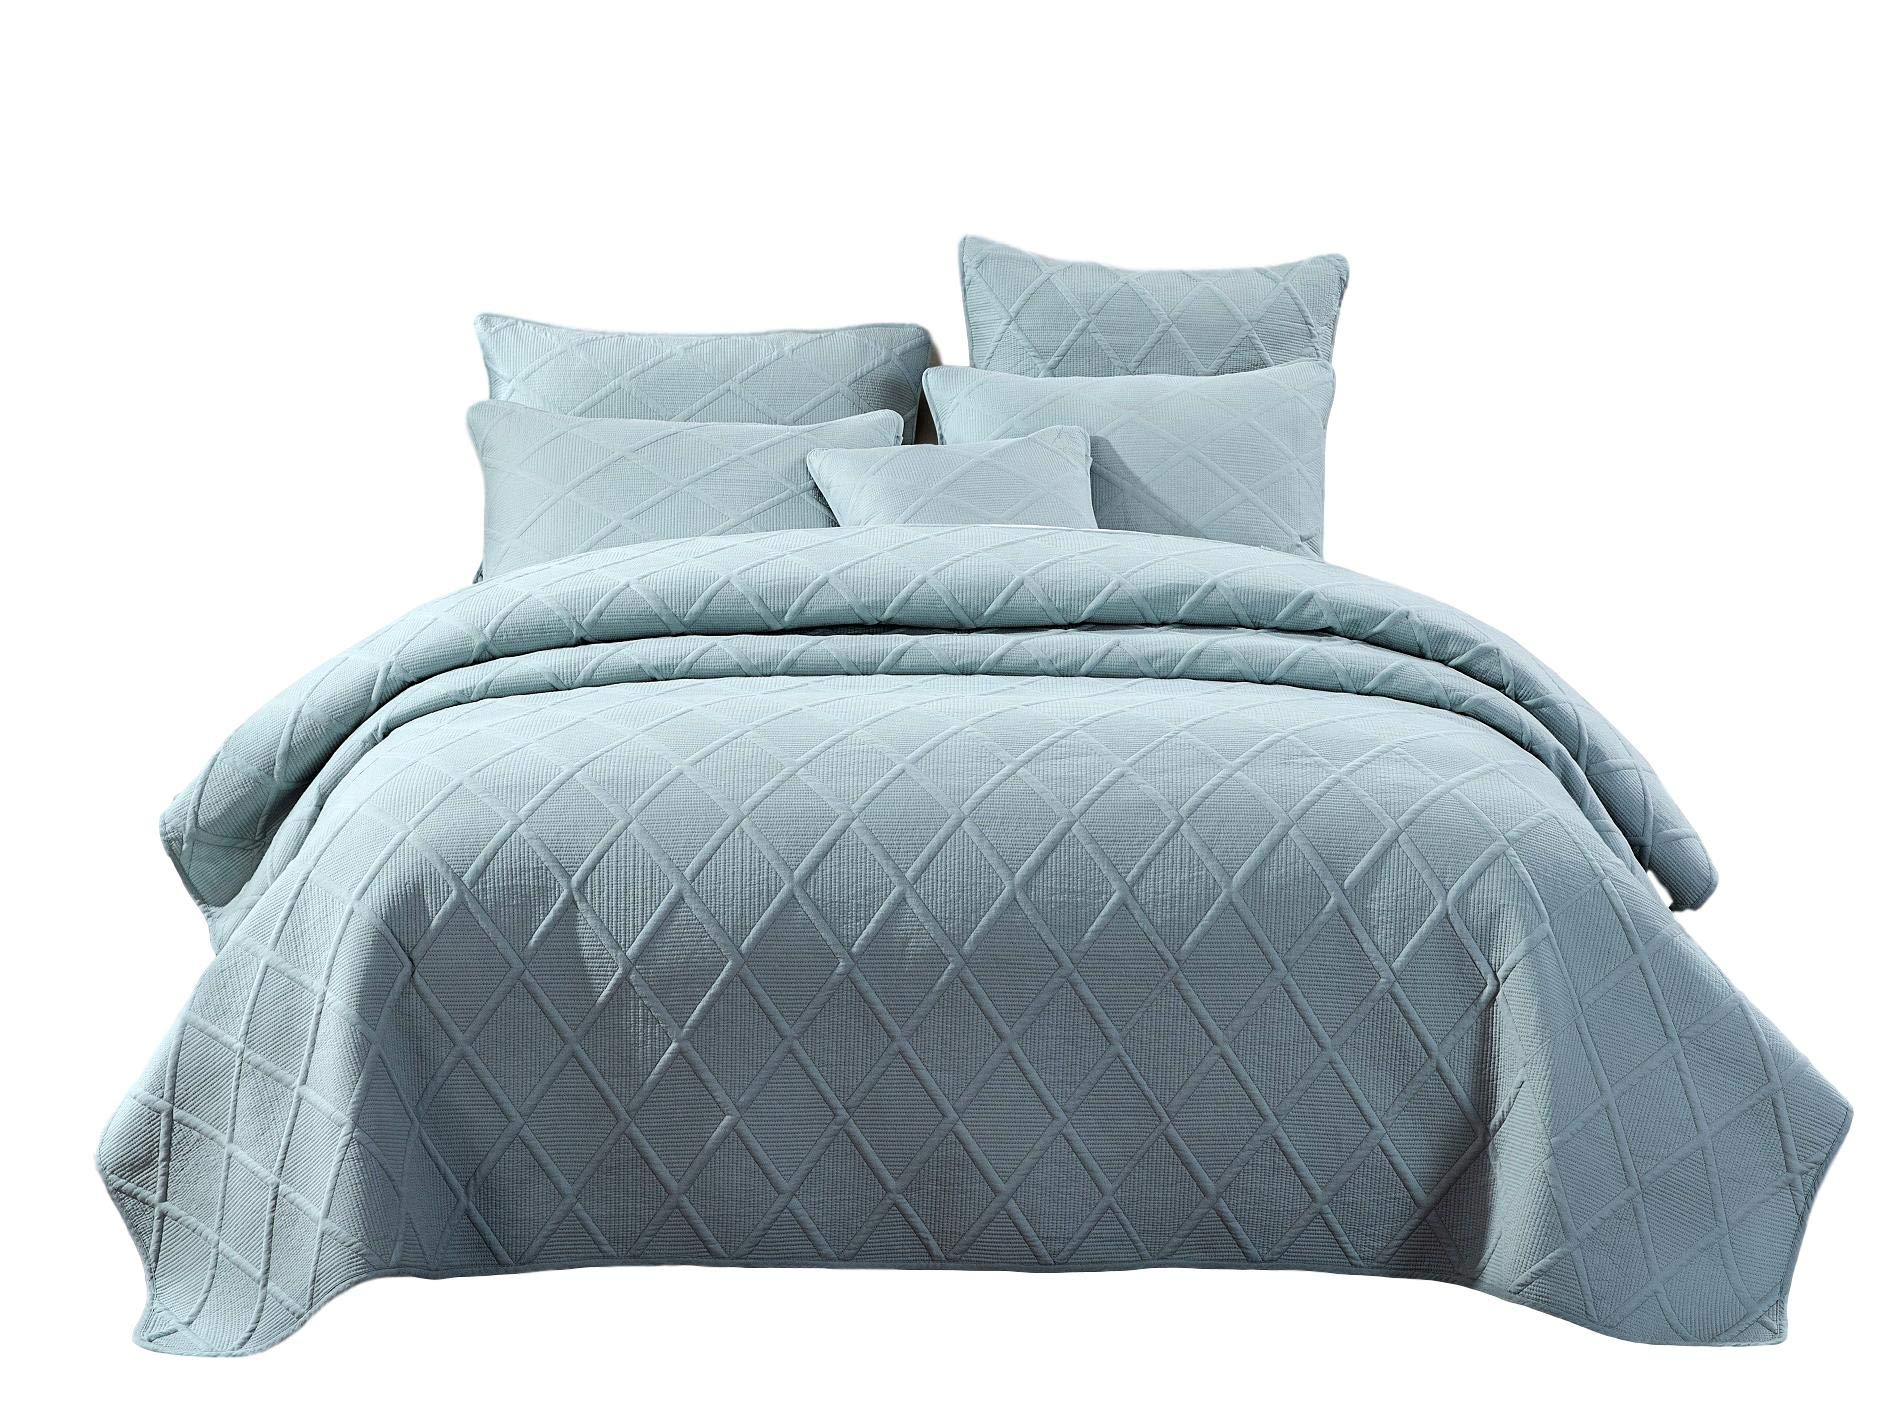 Tache Solid Seafoam Blue Green Soothing Pastel Soft Cotton Geometric Diamond Stitch Pattern Lightweight Quilted Bedspread 3 Piece Set, Queen